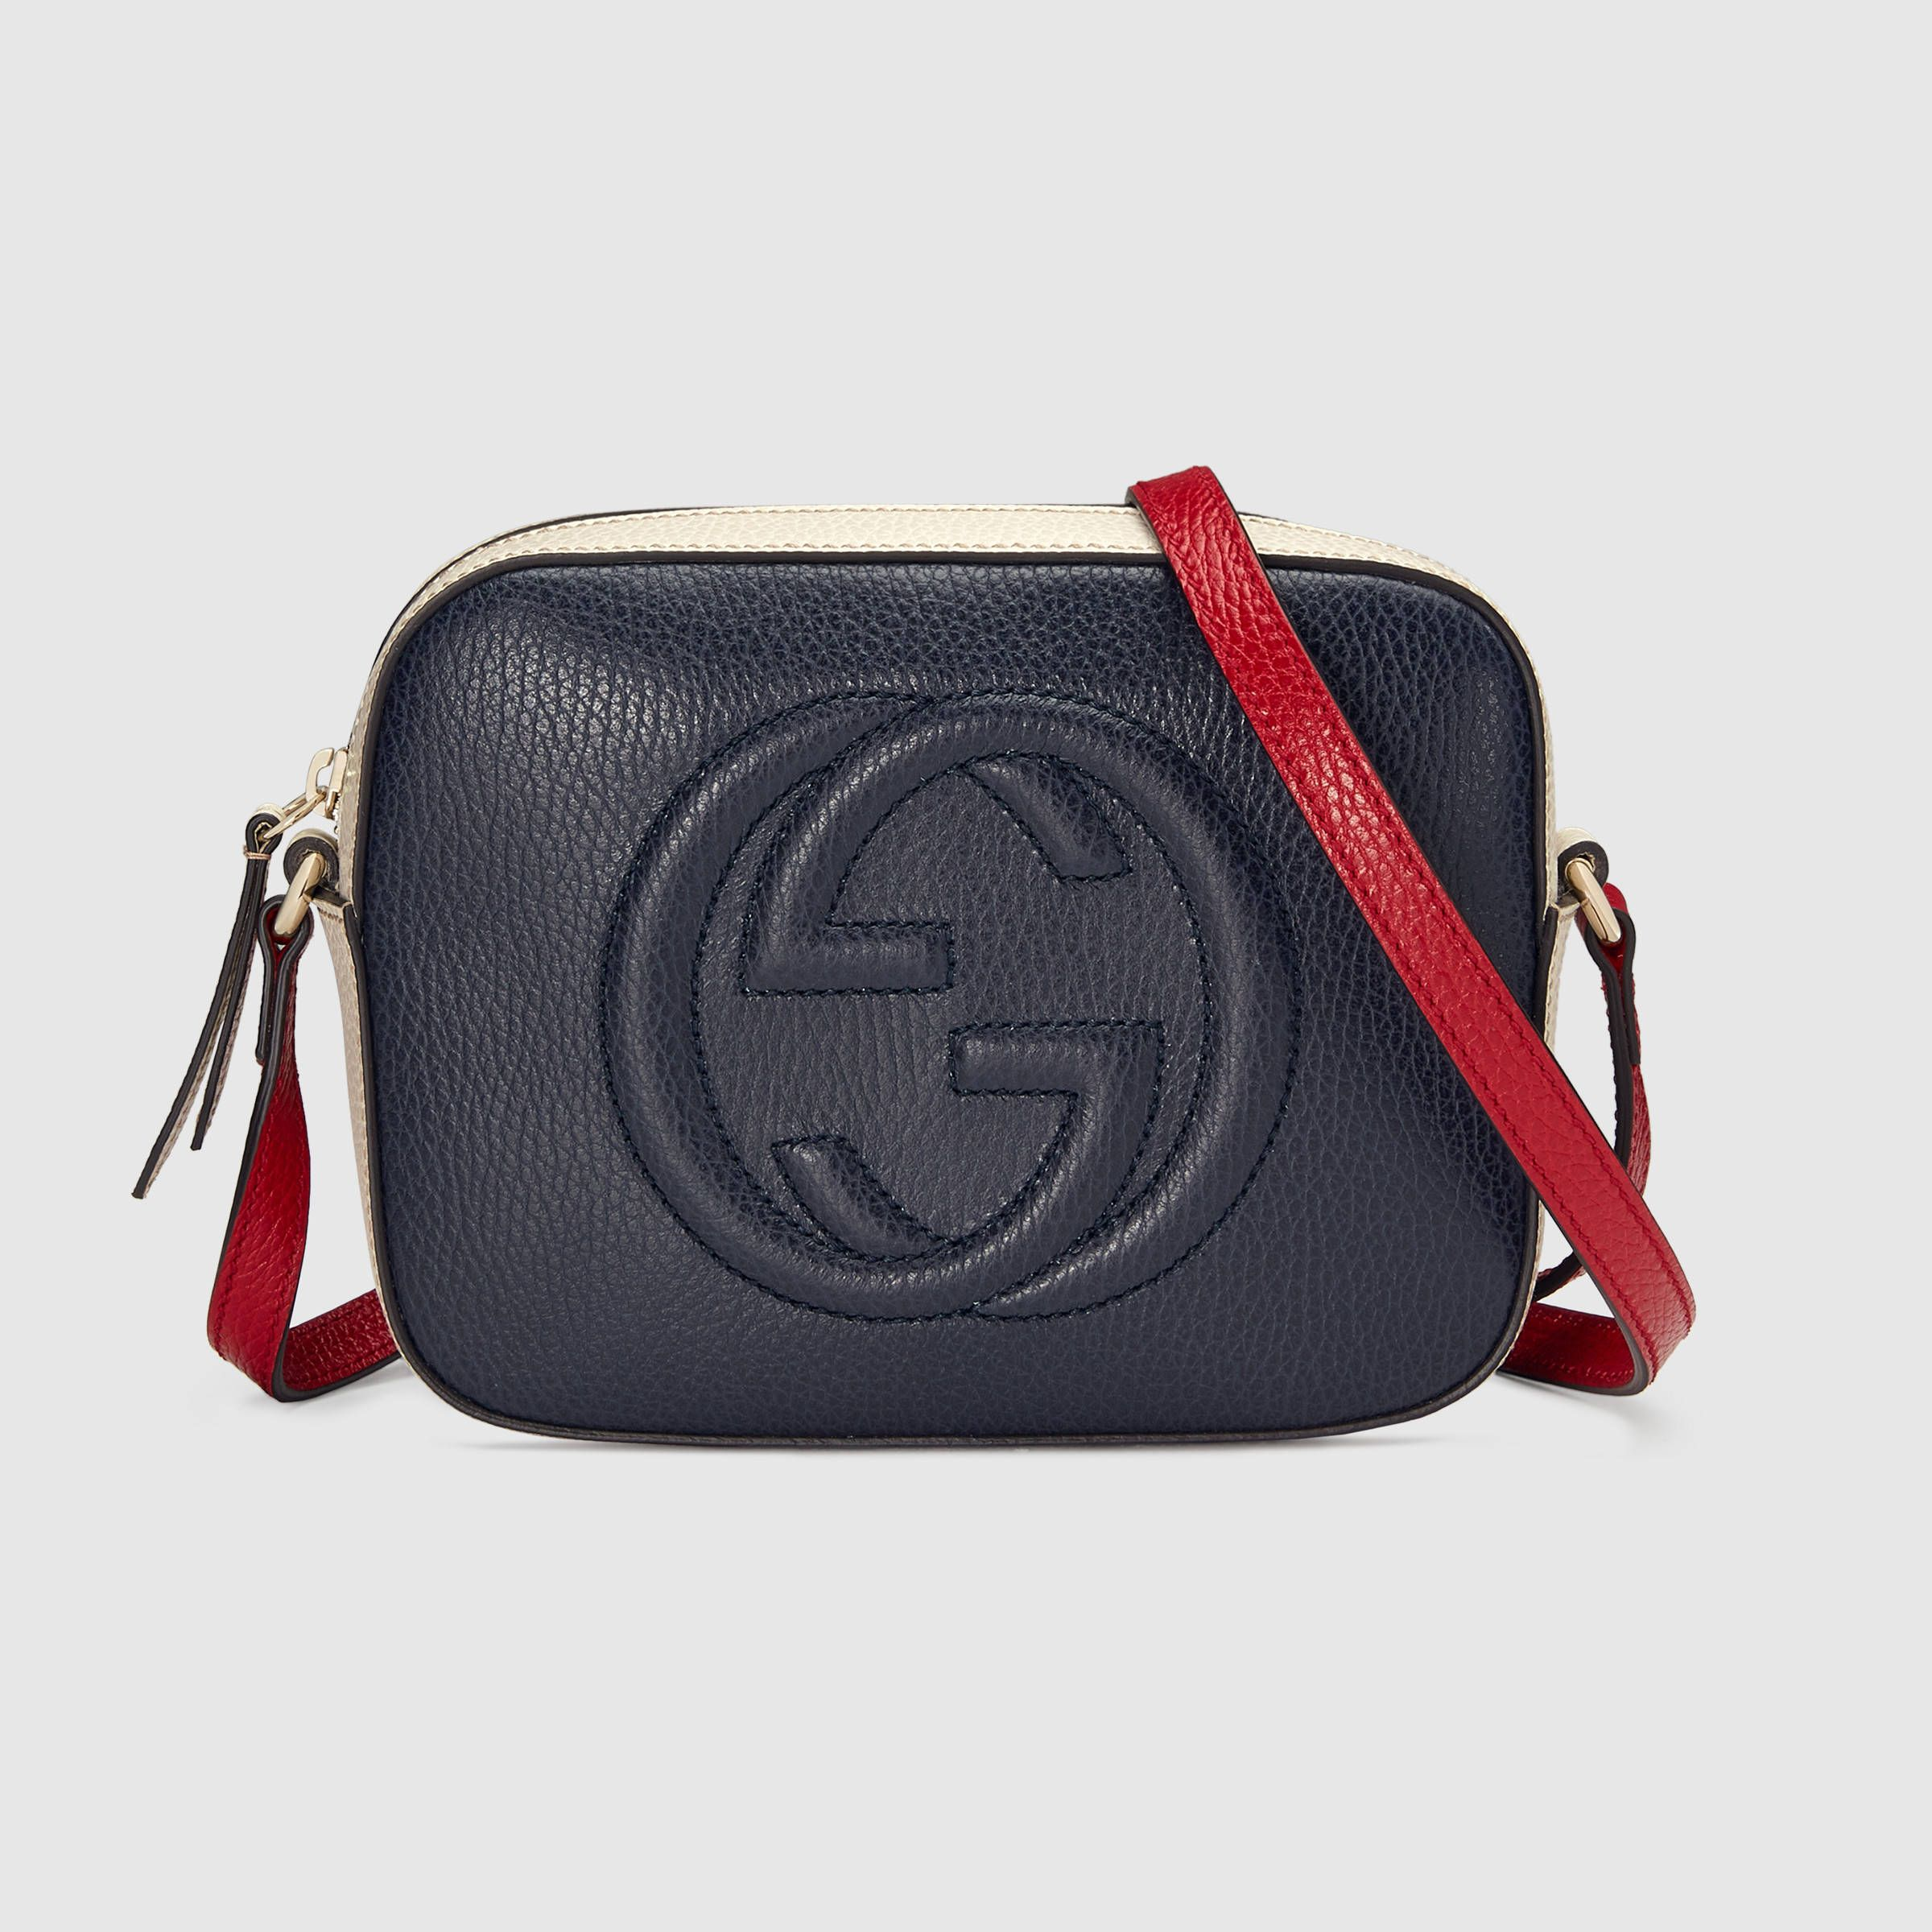 Gucci Women - Soho leather shoulder bag - 431567CAOEG4091 | Arm ...